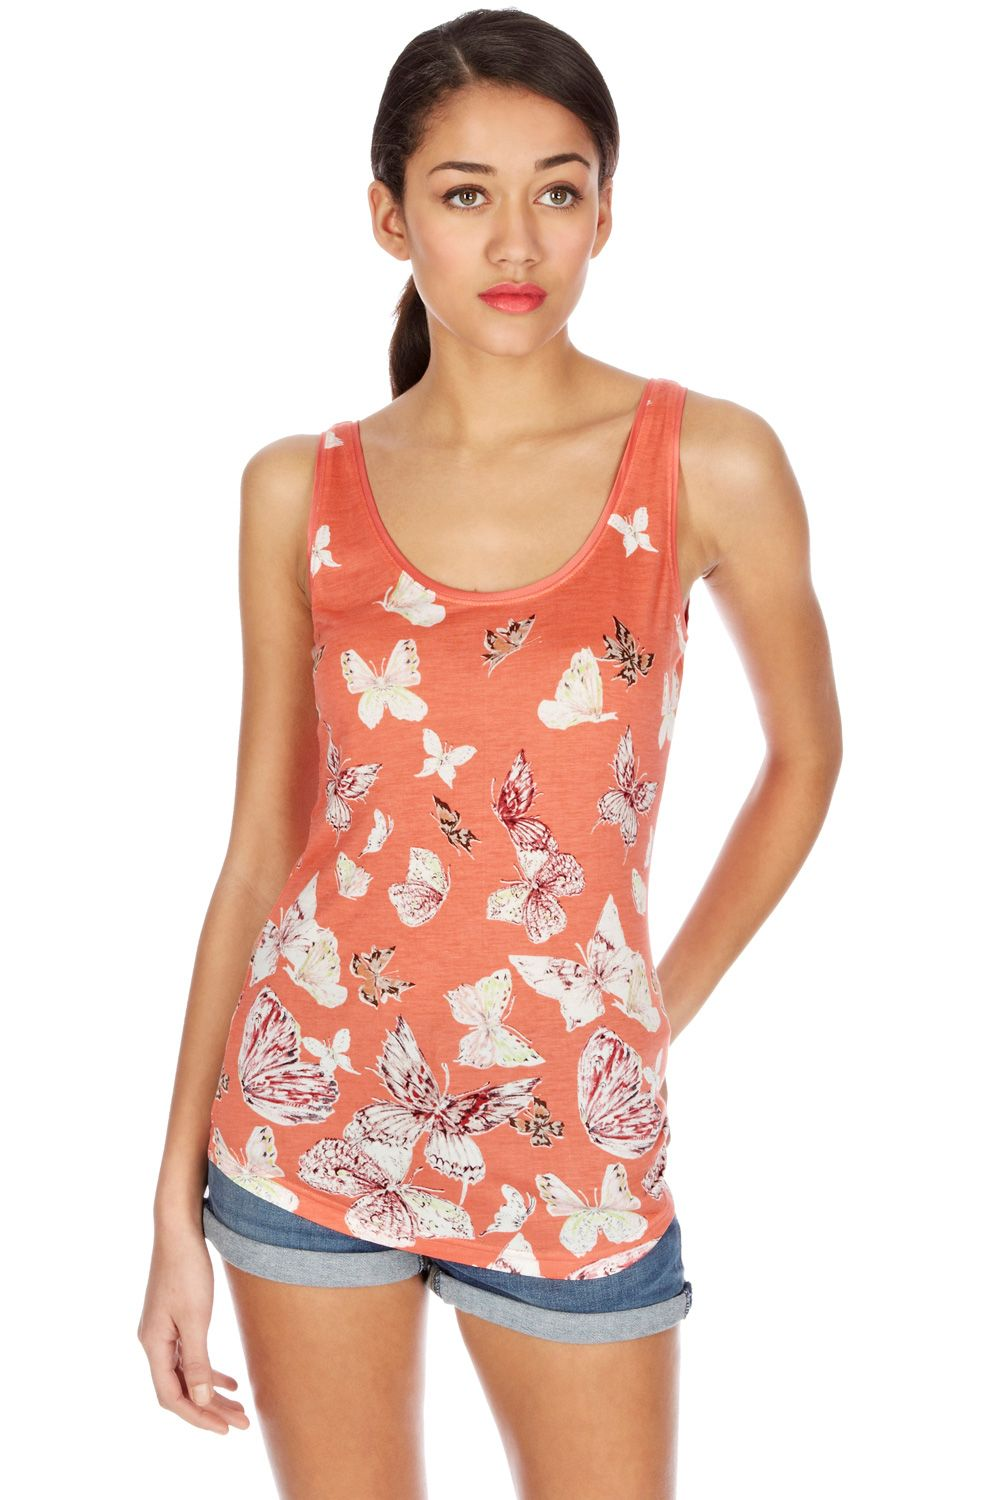 Satin trim sketch butterfly print vest